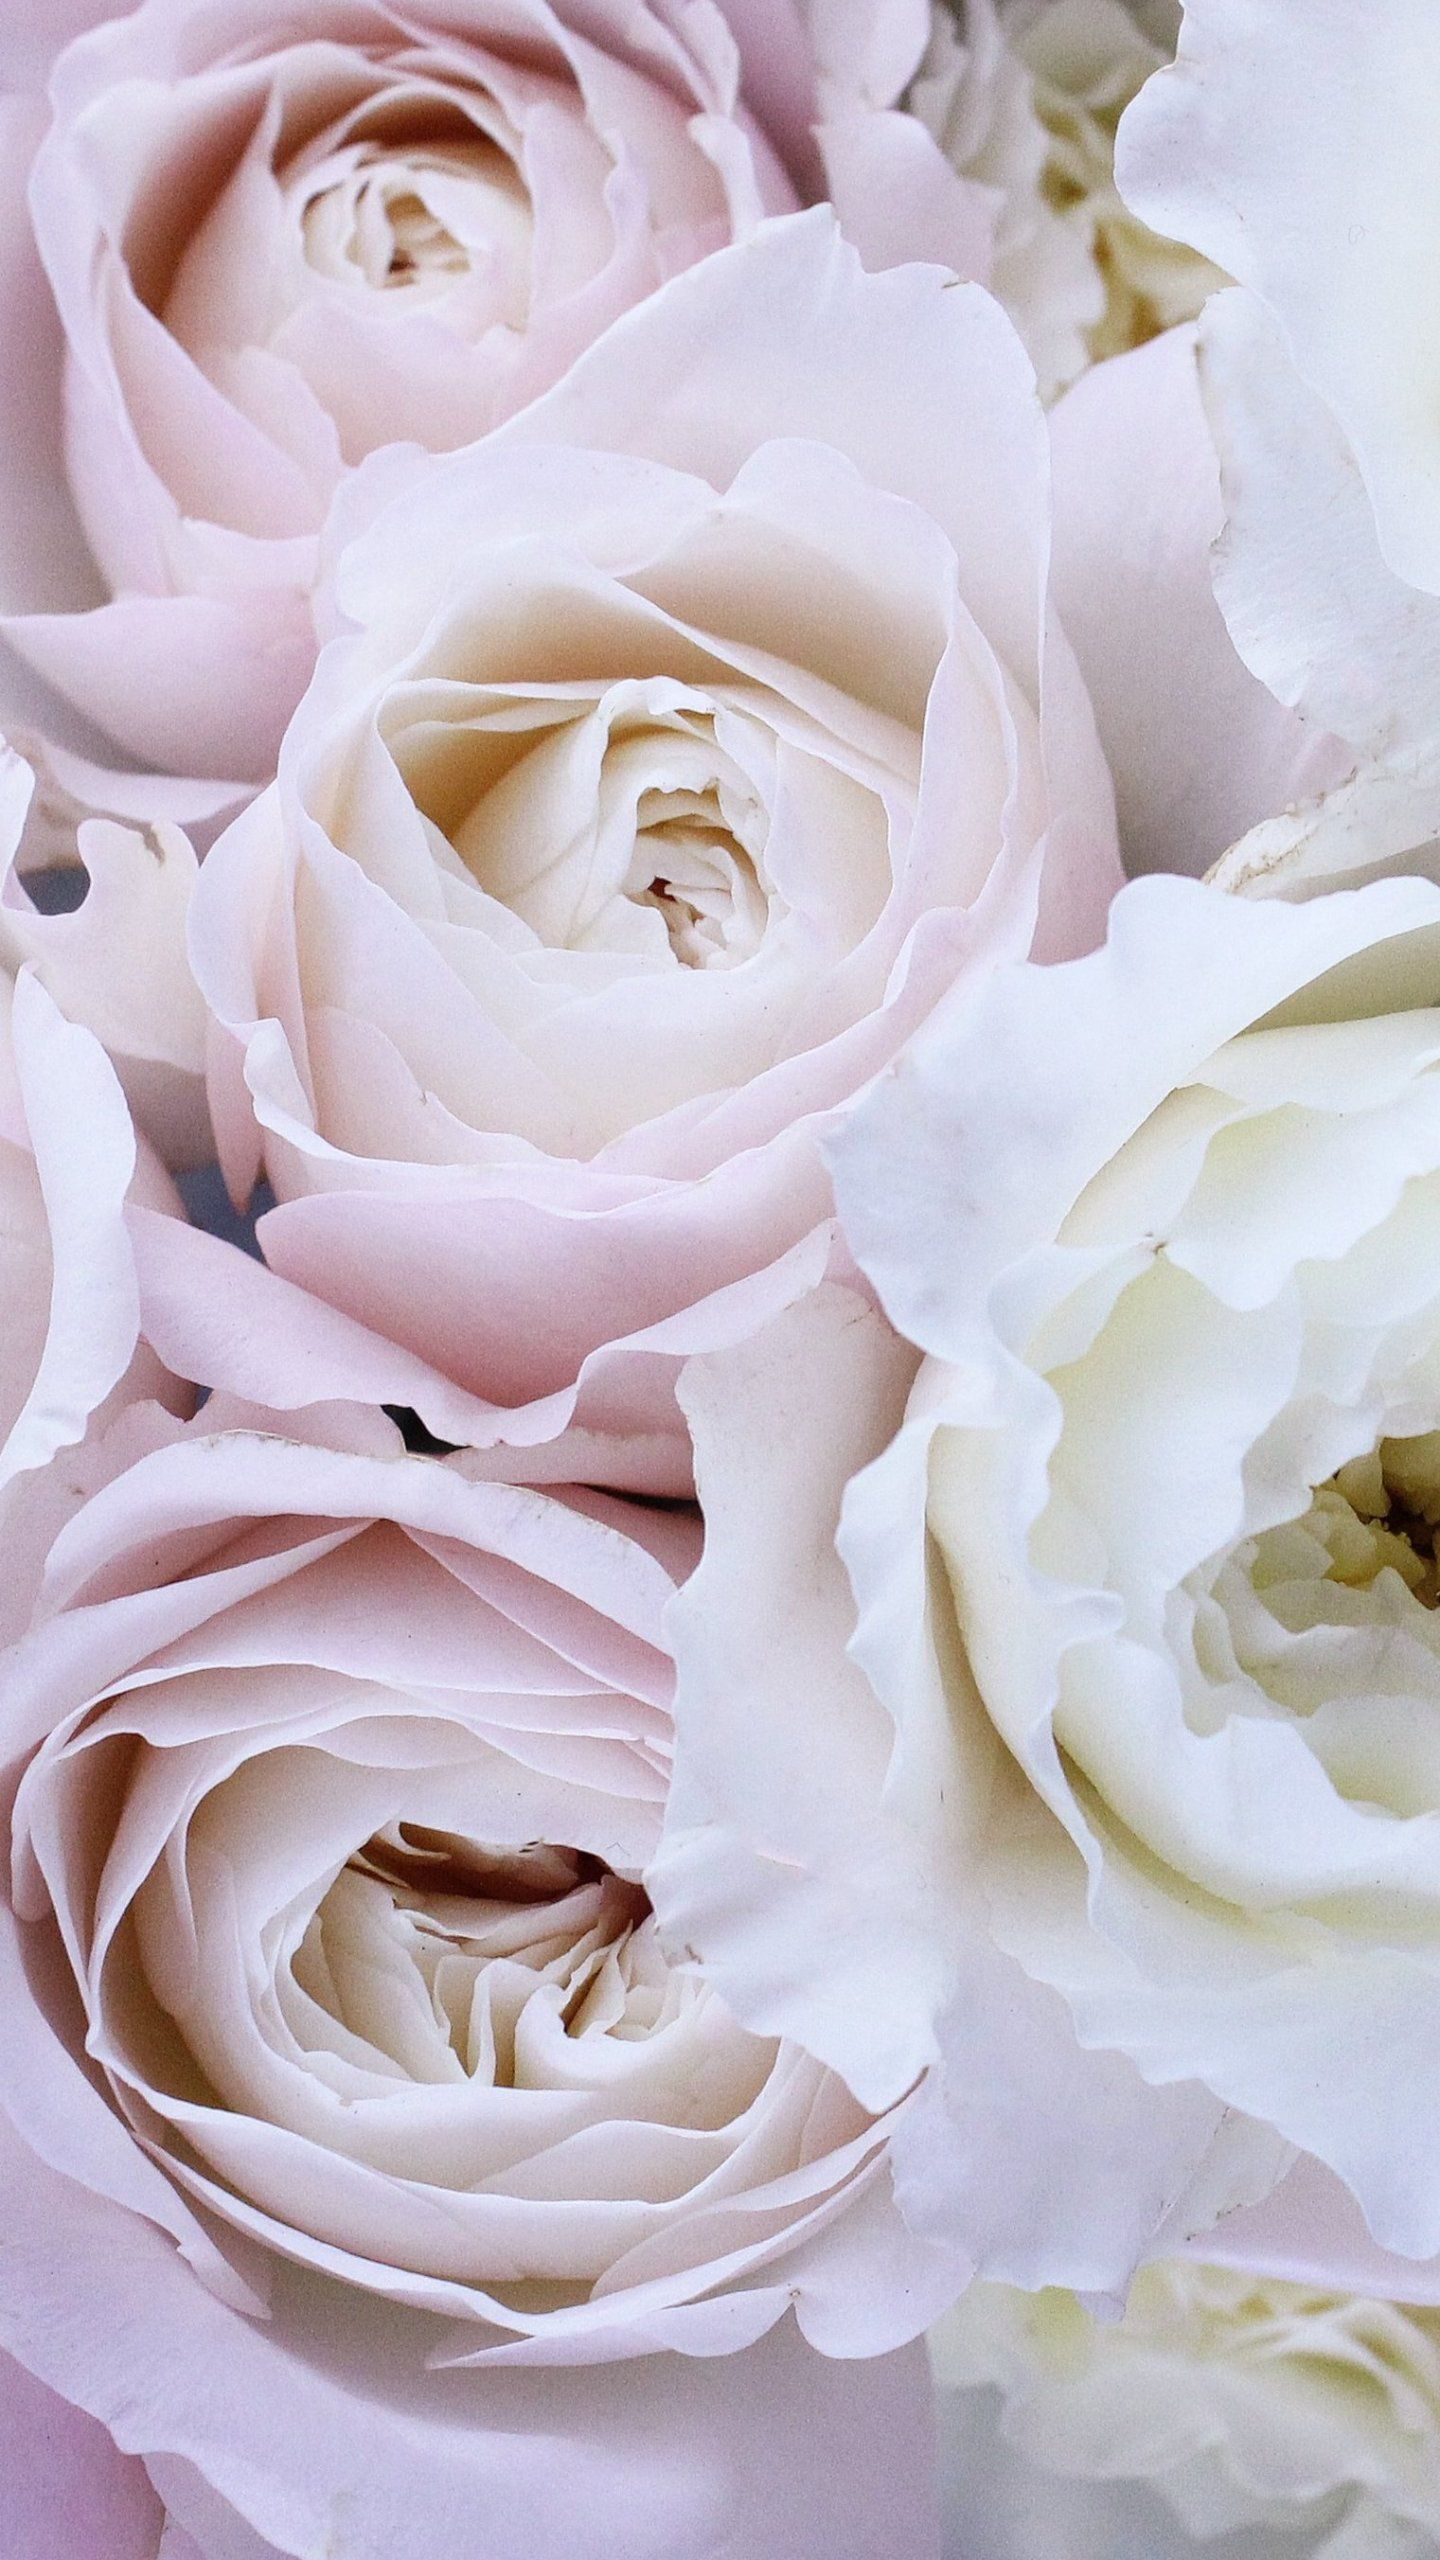 Pale Pink And White Roses Wallpaper Iphone Android Desktop Backgrounds Rose Wallpaper White Roses Wallpaper Flower Wallpaper